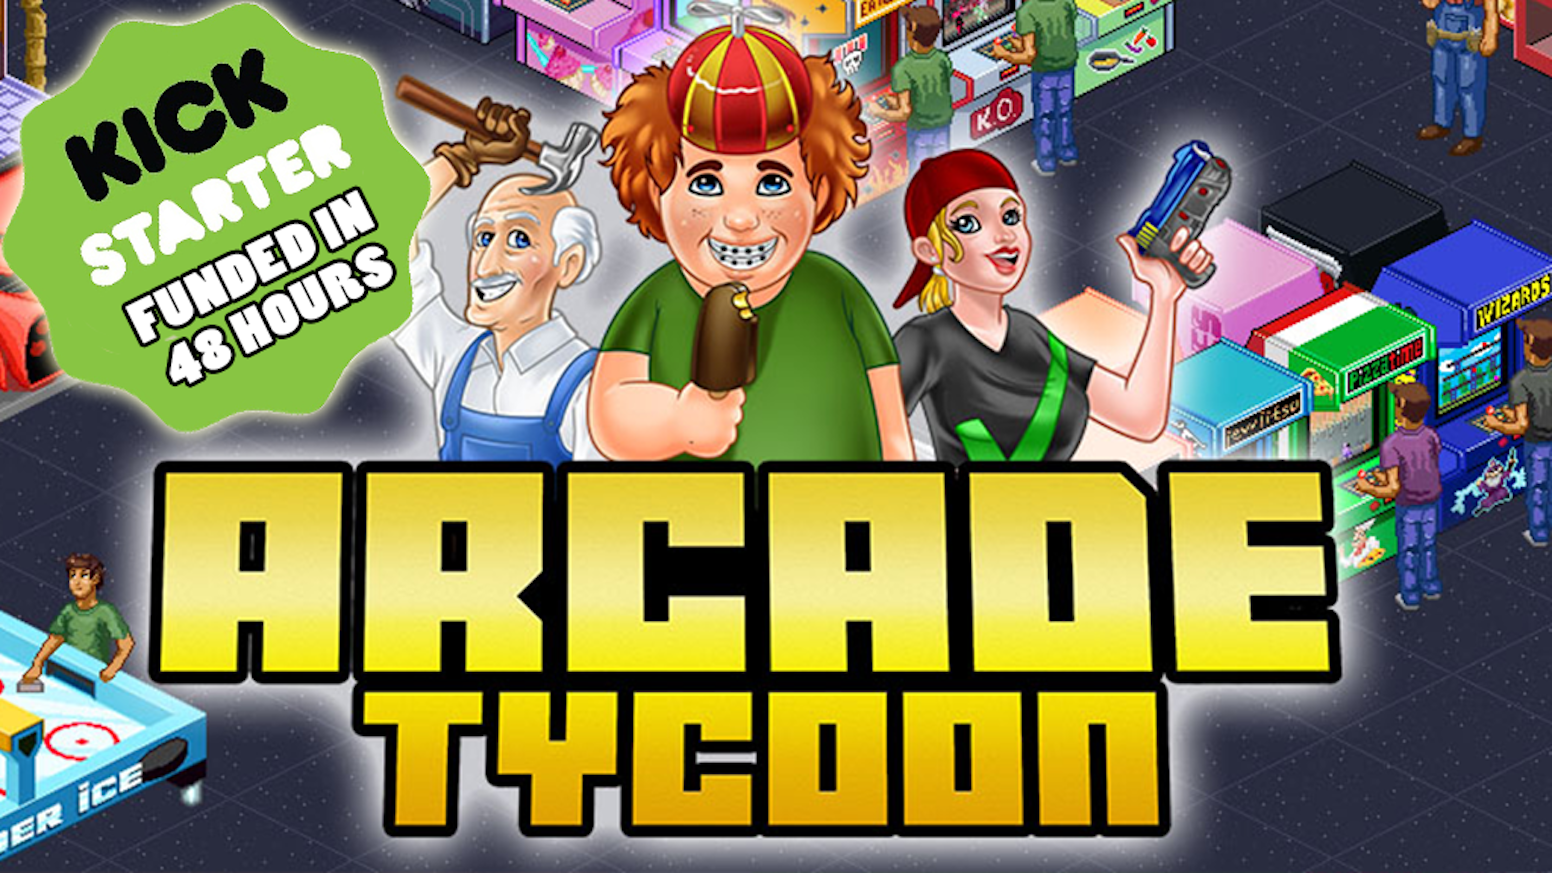 Arcade Tycoon - Simulation Pc Game by Nigel Moran — Kickstarter